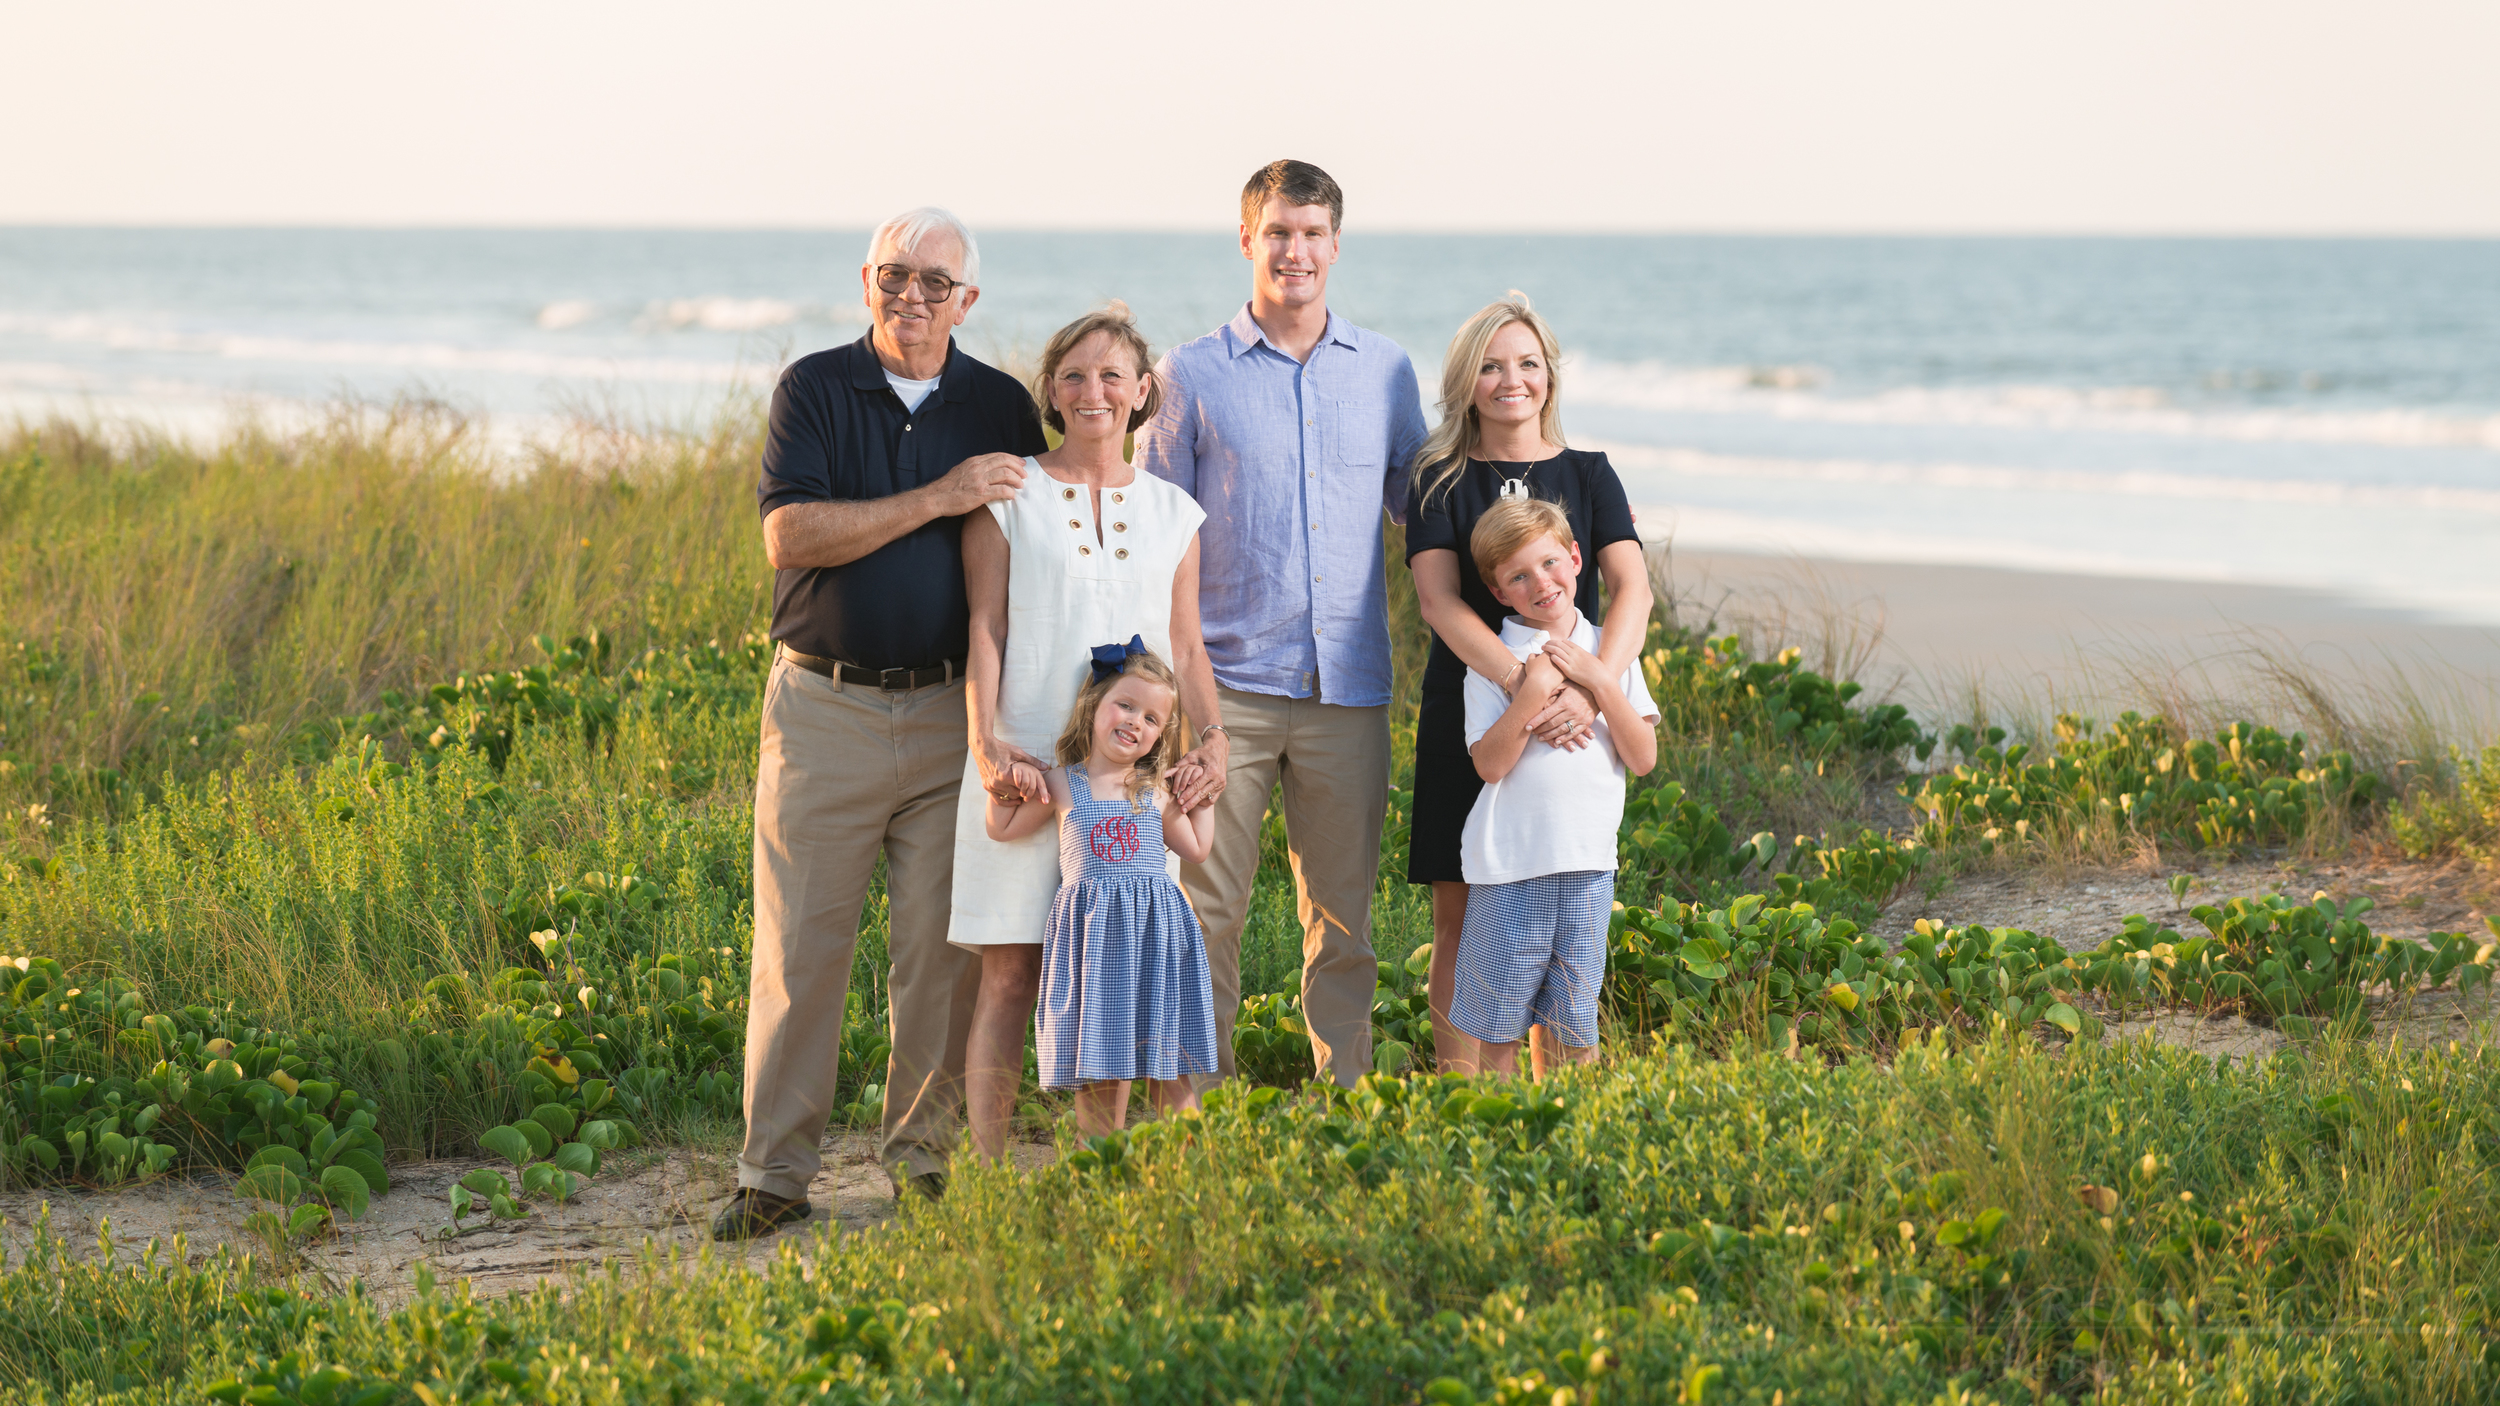 St. Augustine Family Photographers captured beautiful extended family portrait on the beach.